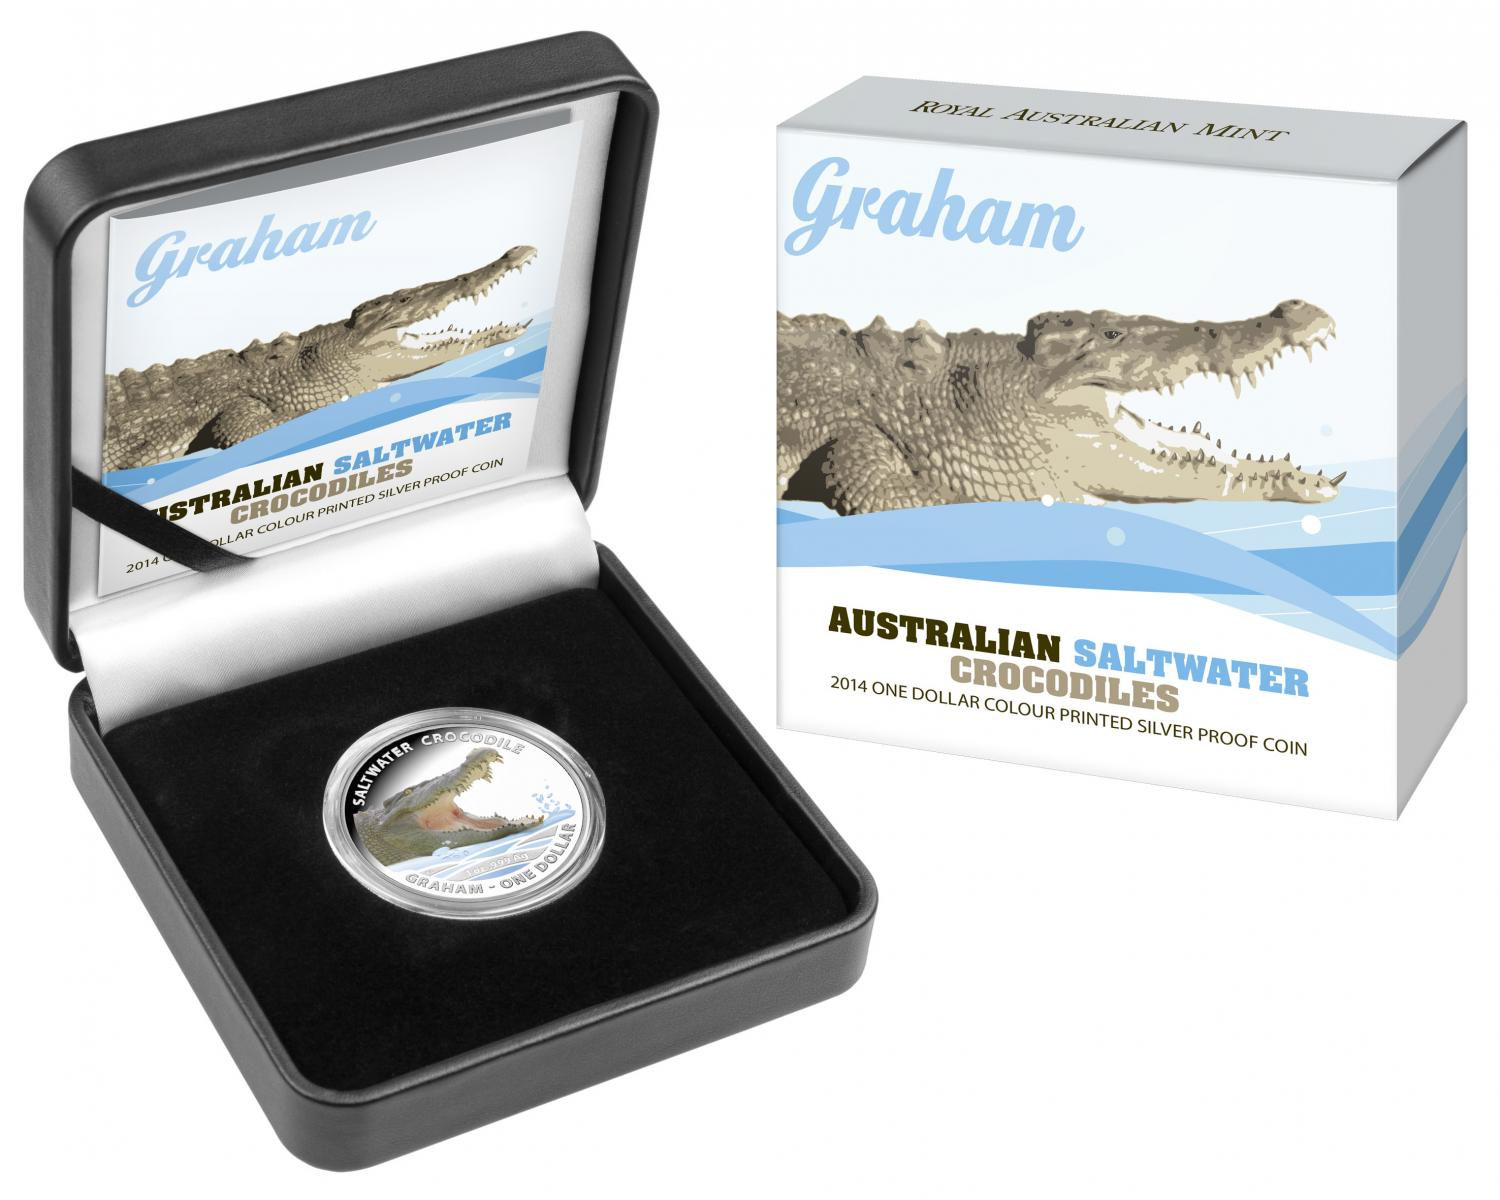 Thumbnail for 2014 1oz Coloured Silver Proof Australian Saltwater Crocodile - Graham